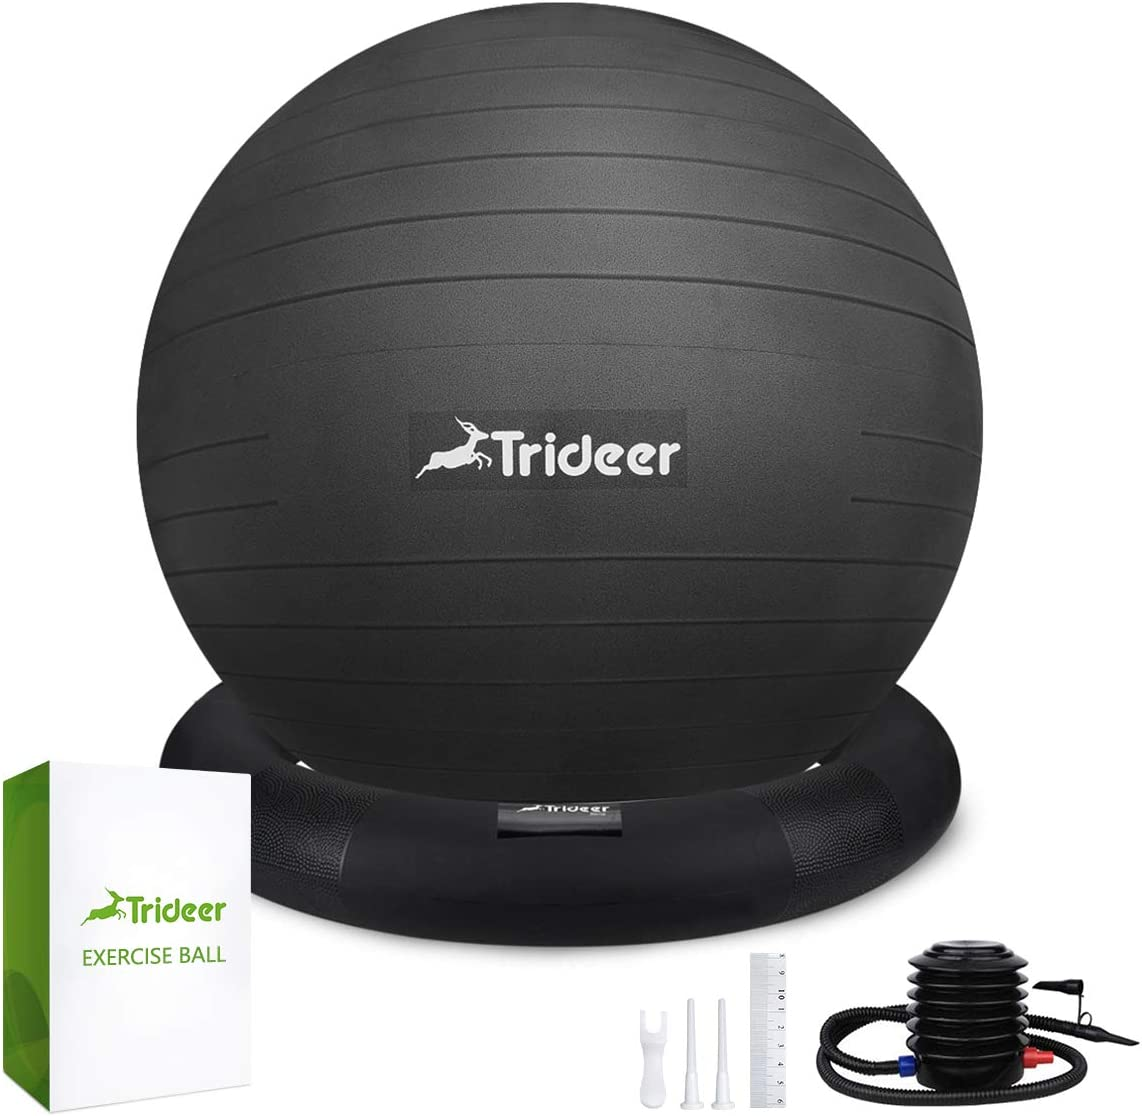 Trideer Ball Chair - Exercise Stability Yoga Ball with Base for Home and Office Desk, Ball Seat, Flexible Seating with Pump, Improves Balance, Back Pain, Core Strength & Posture